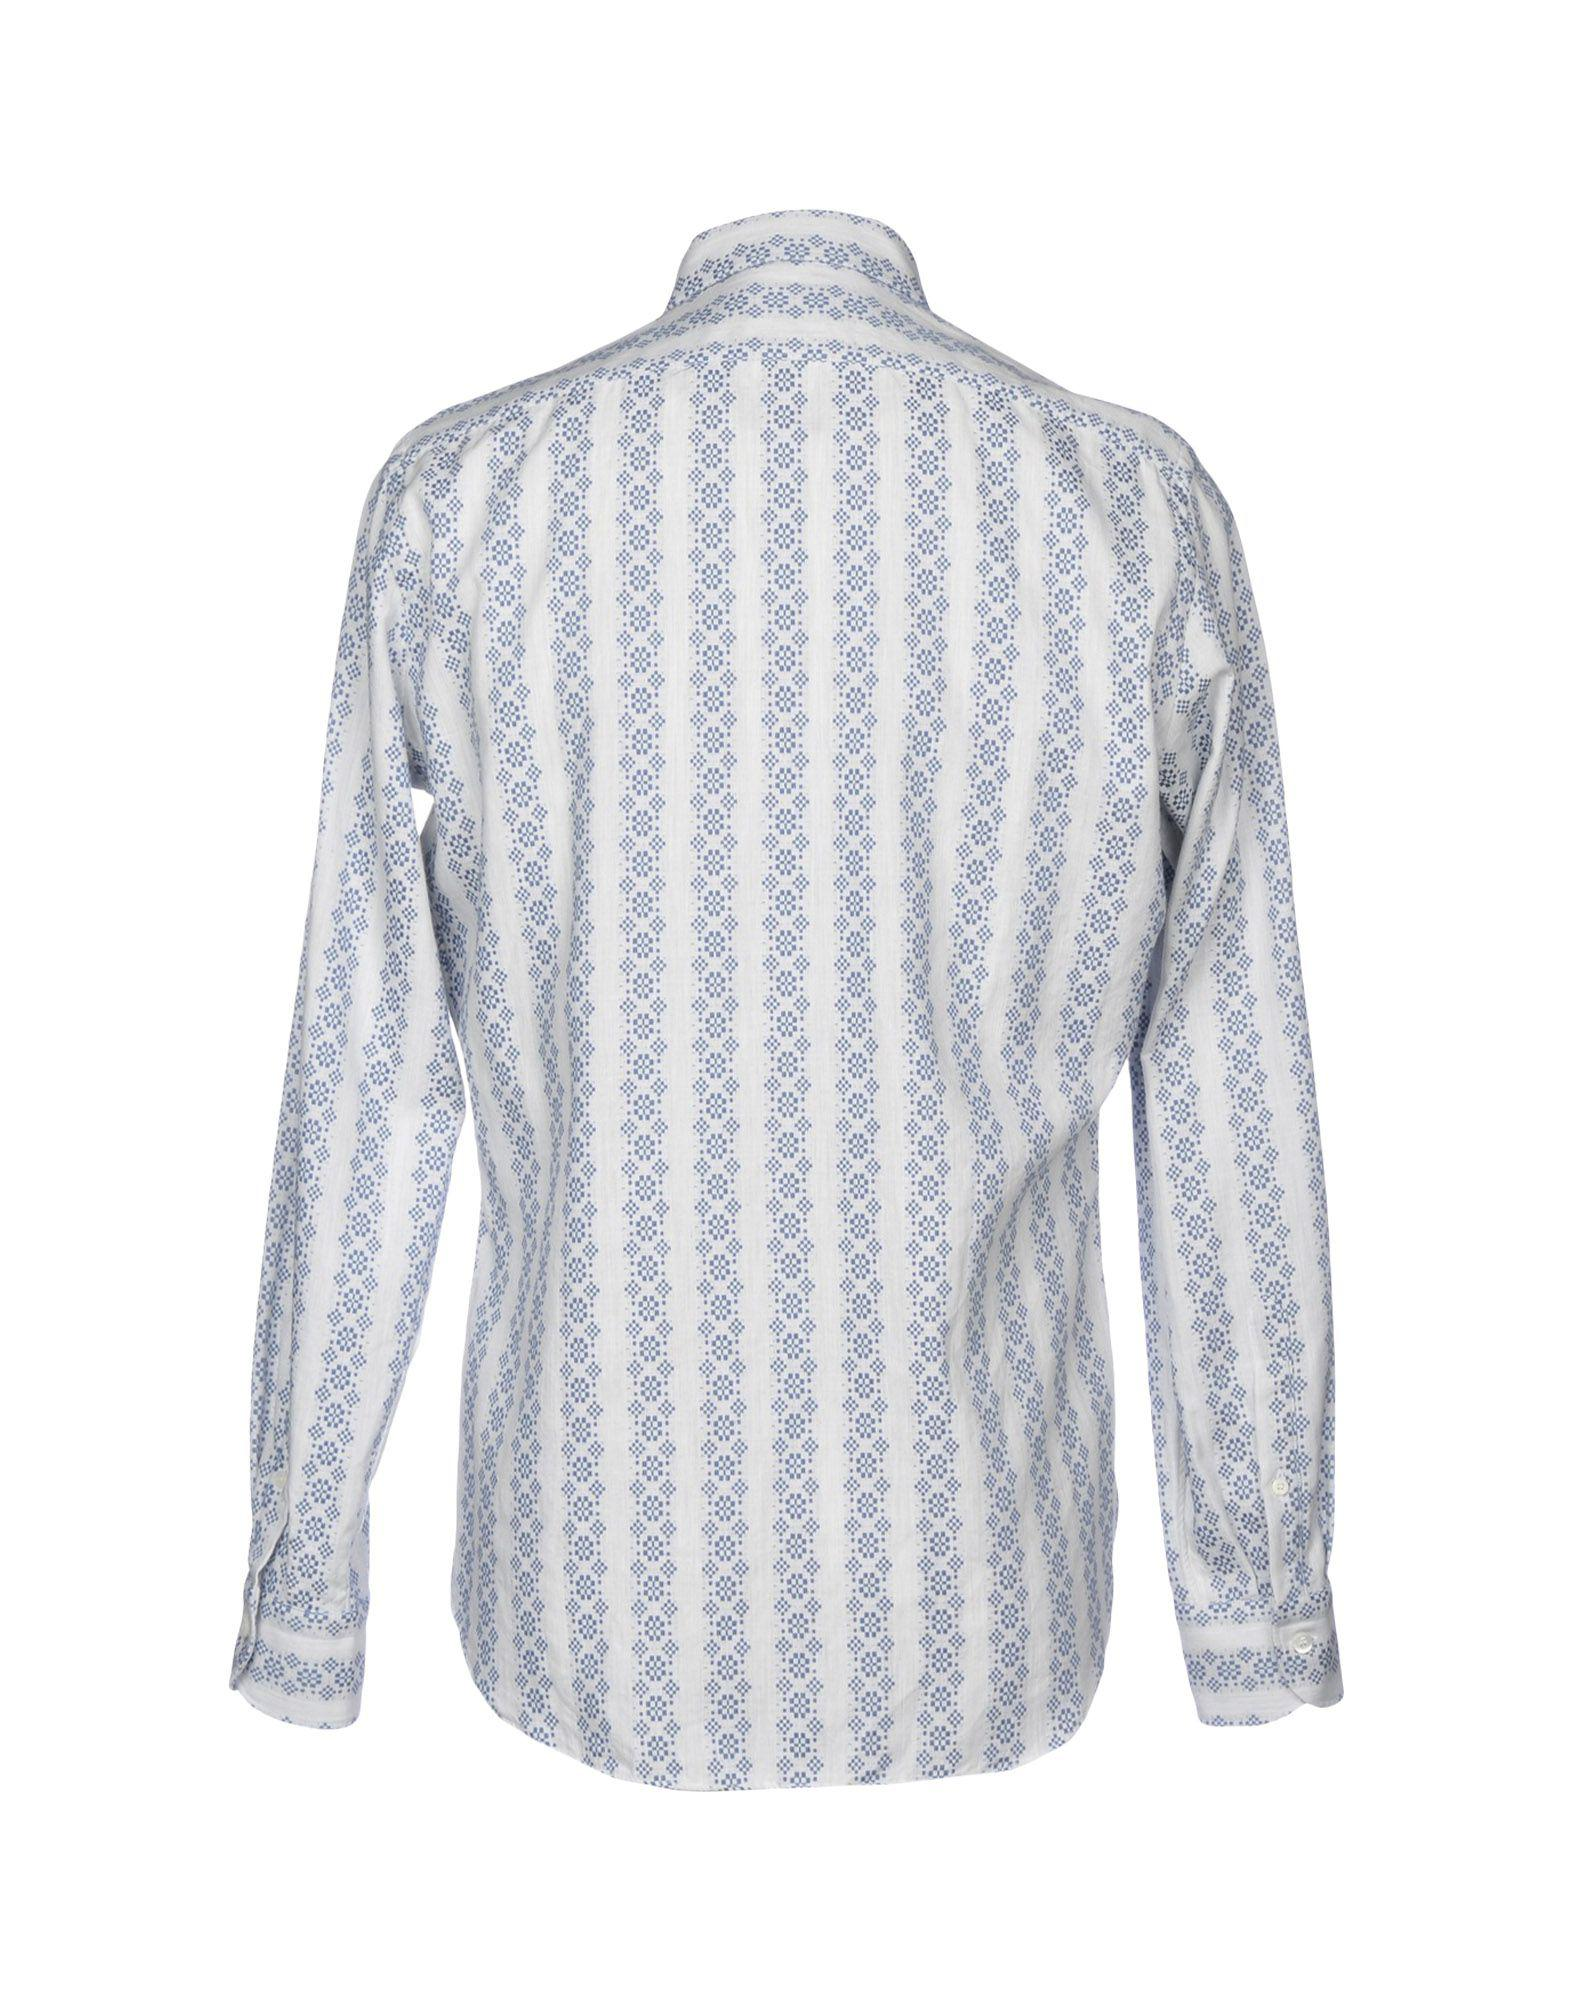 536f754414b Designer White Collar Shirts – EDGE Engineering and Consulting Limited